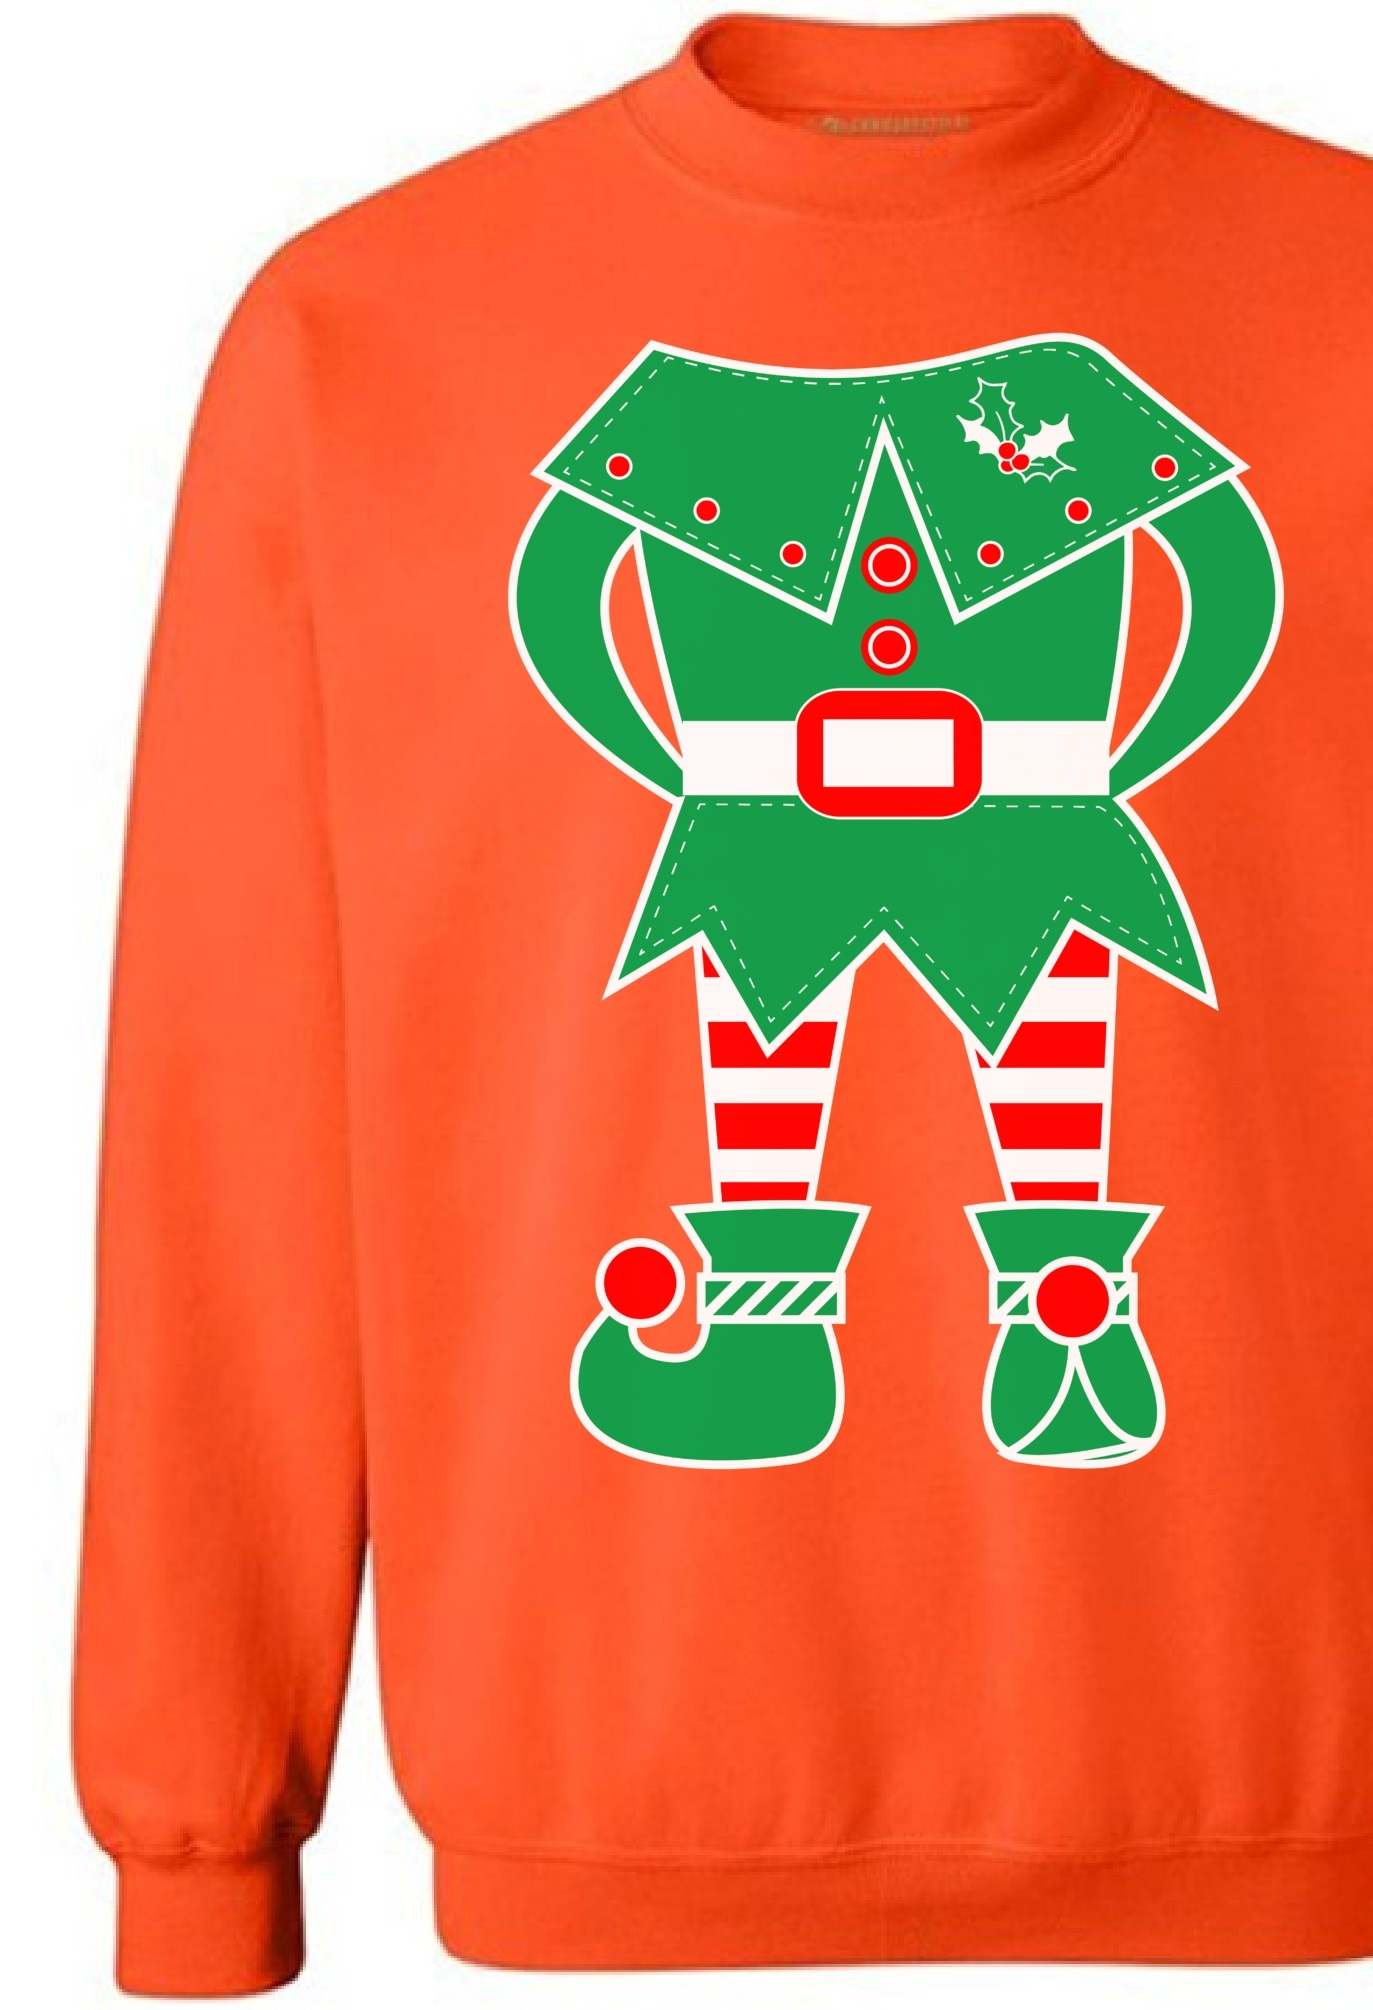 Awkward Styles Elf Christmas Sweatshirt Holiday Sweater Elf Suit Christmas Sweater Elf Christmas Sweater Holiday Party Family Elf Christmas Sweatshirt for Men and for Women Xmas Gifts